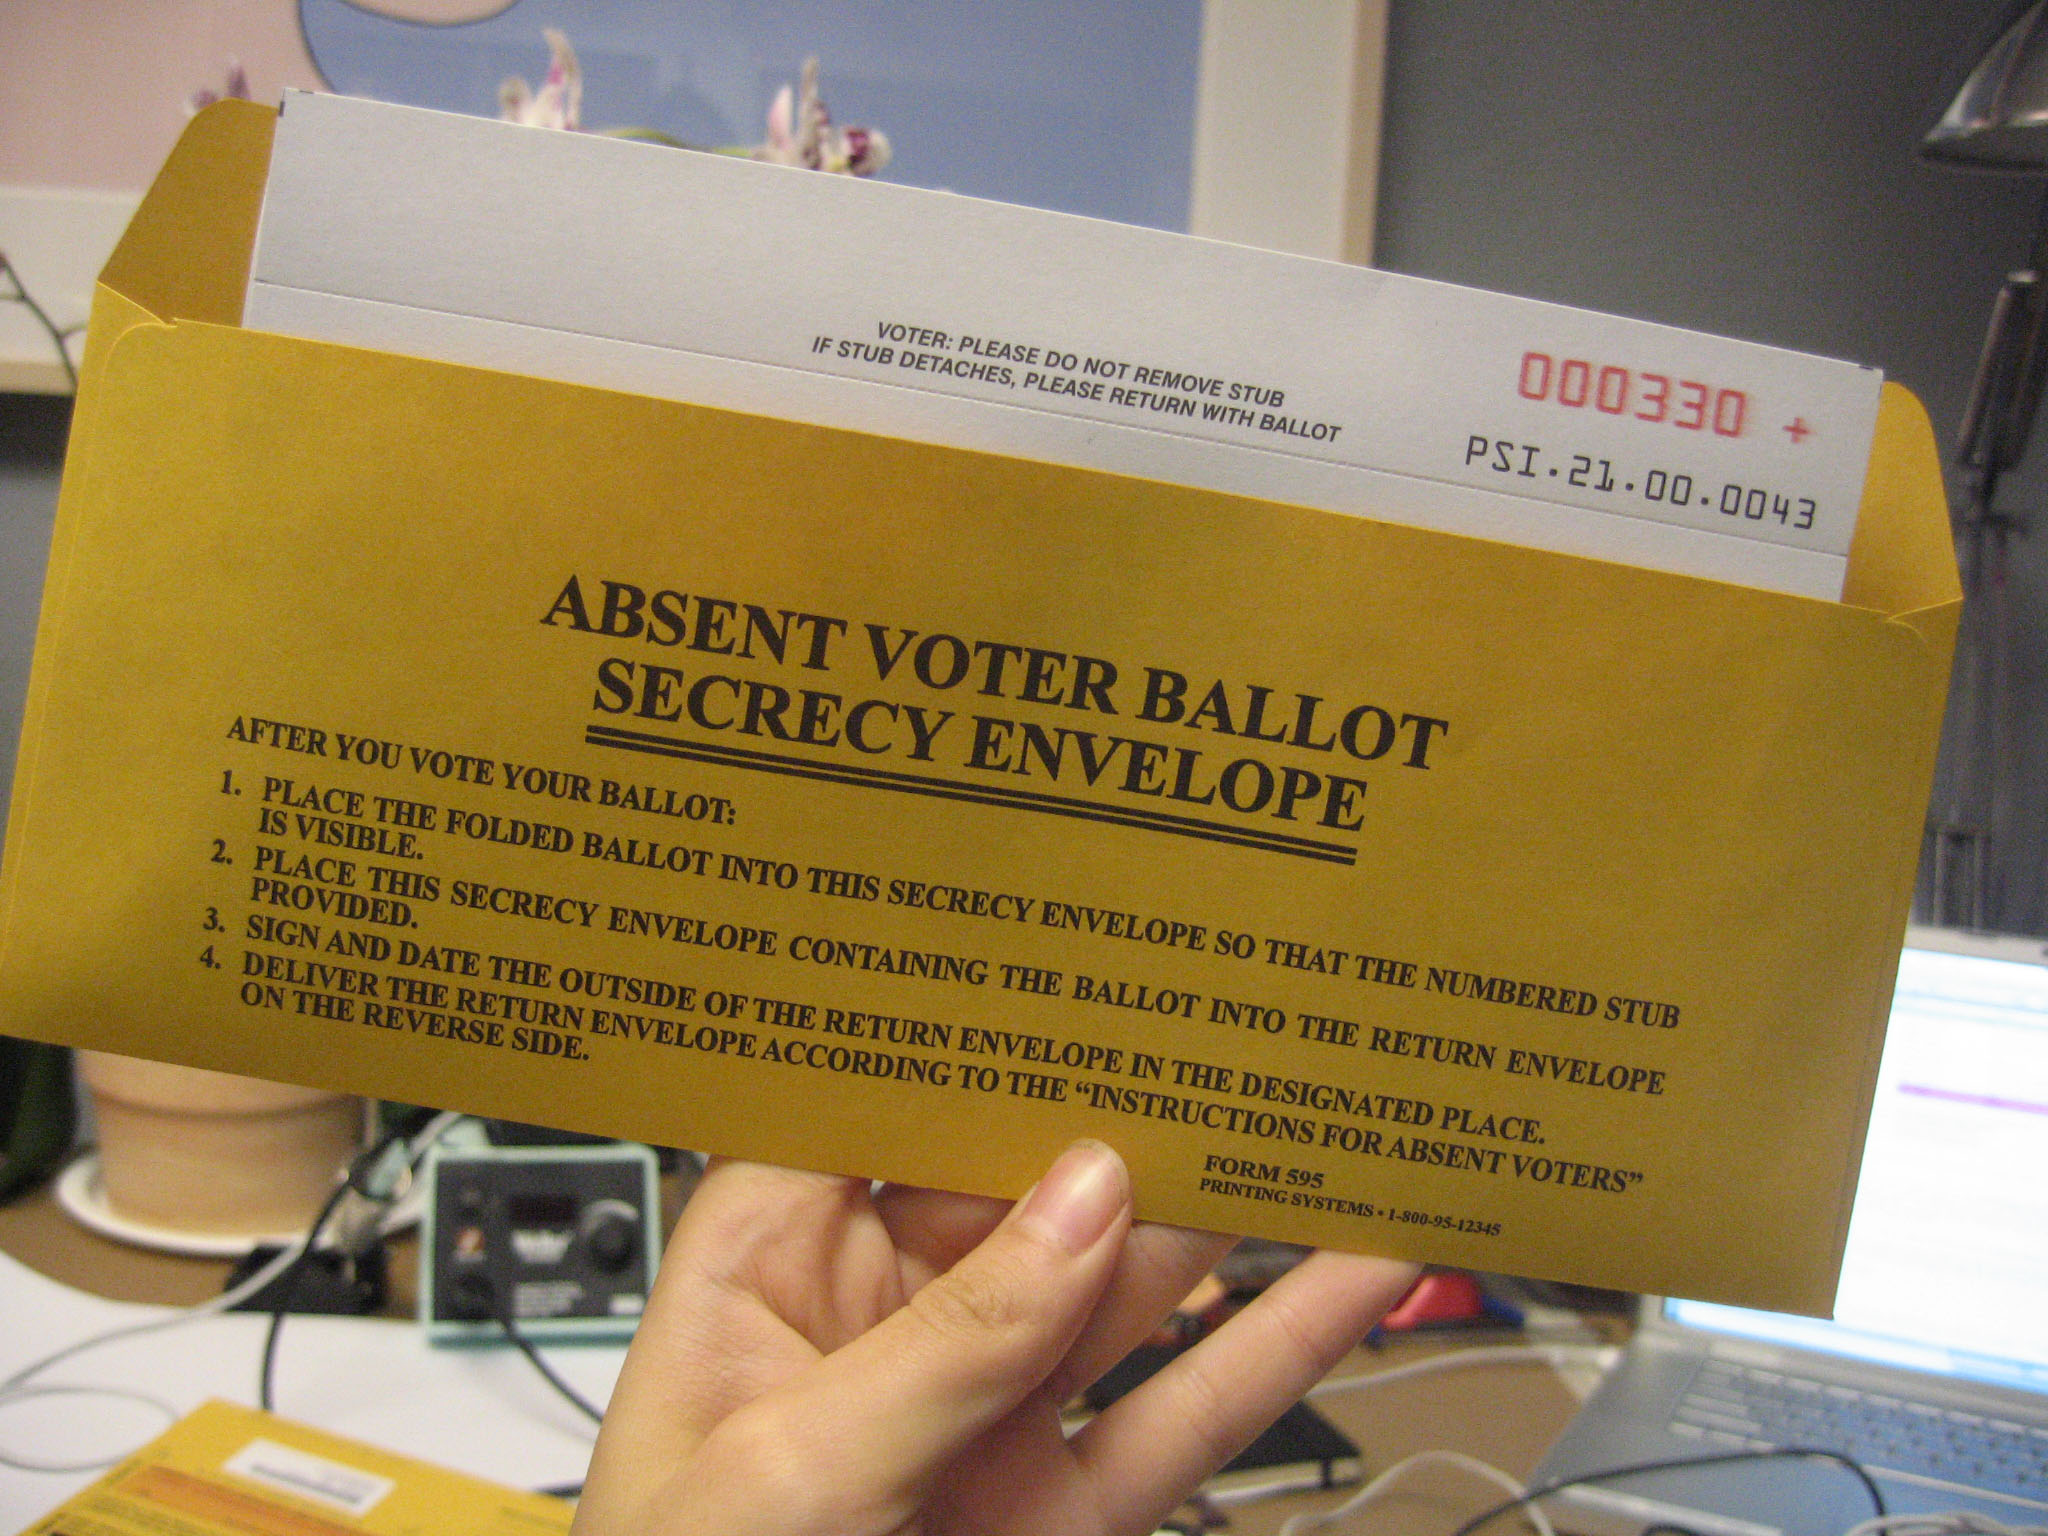 "An envelope being held up ""Absent Voter Ballot Secrecy Envelope"" with instructions"